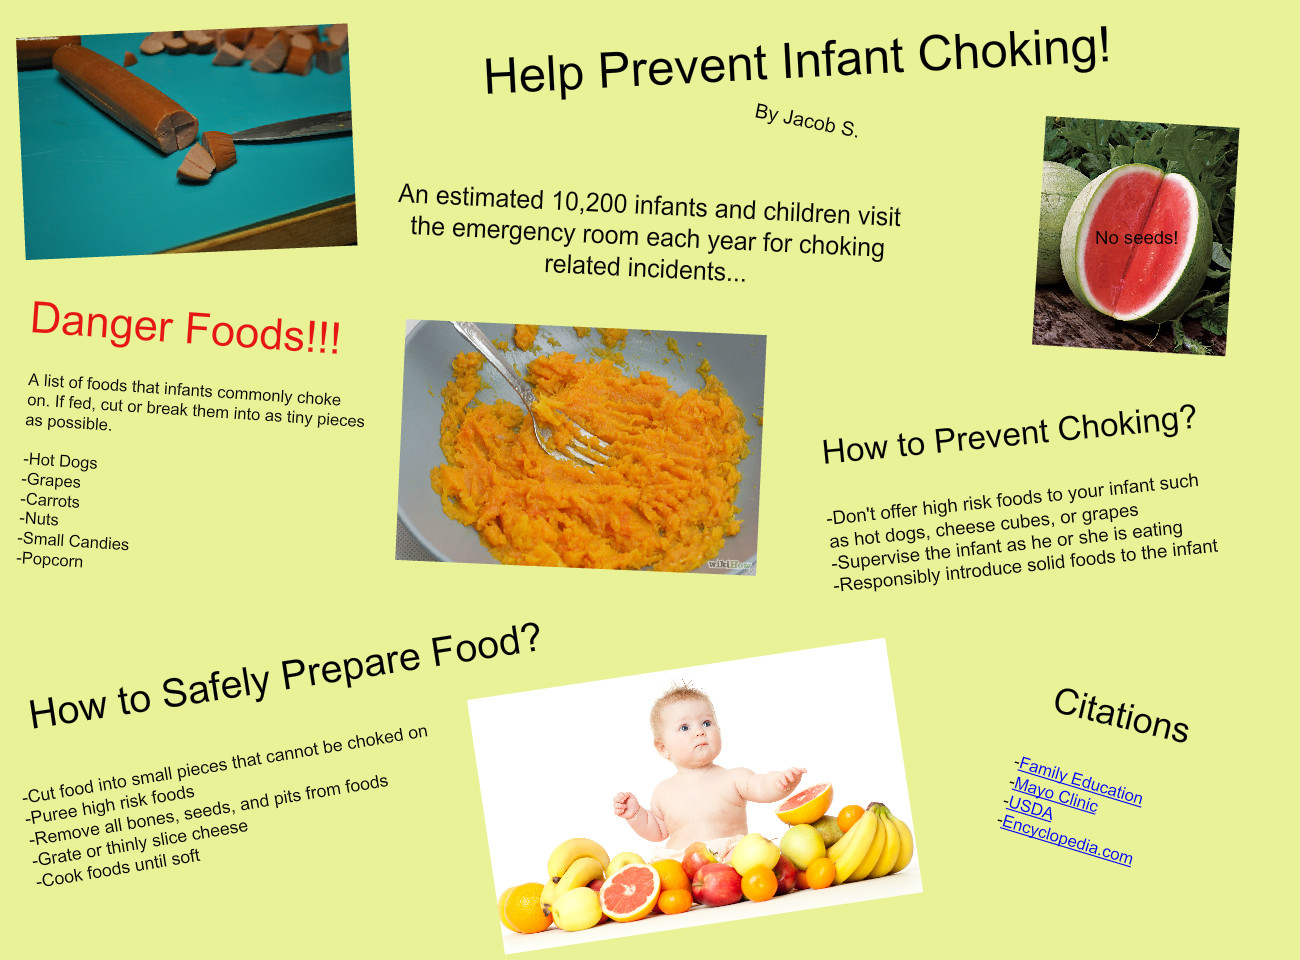 Help Prevent Infant Choking! - Jacob S.